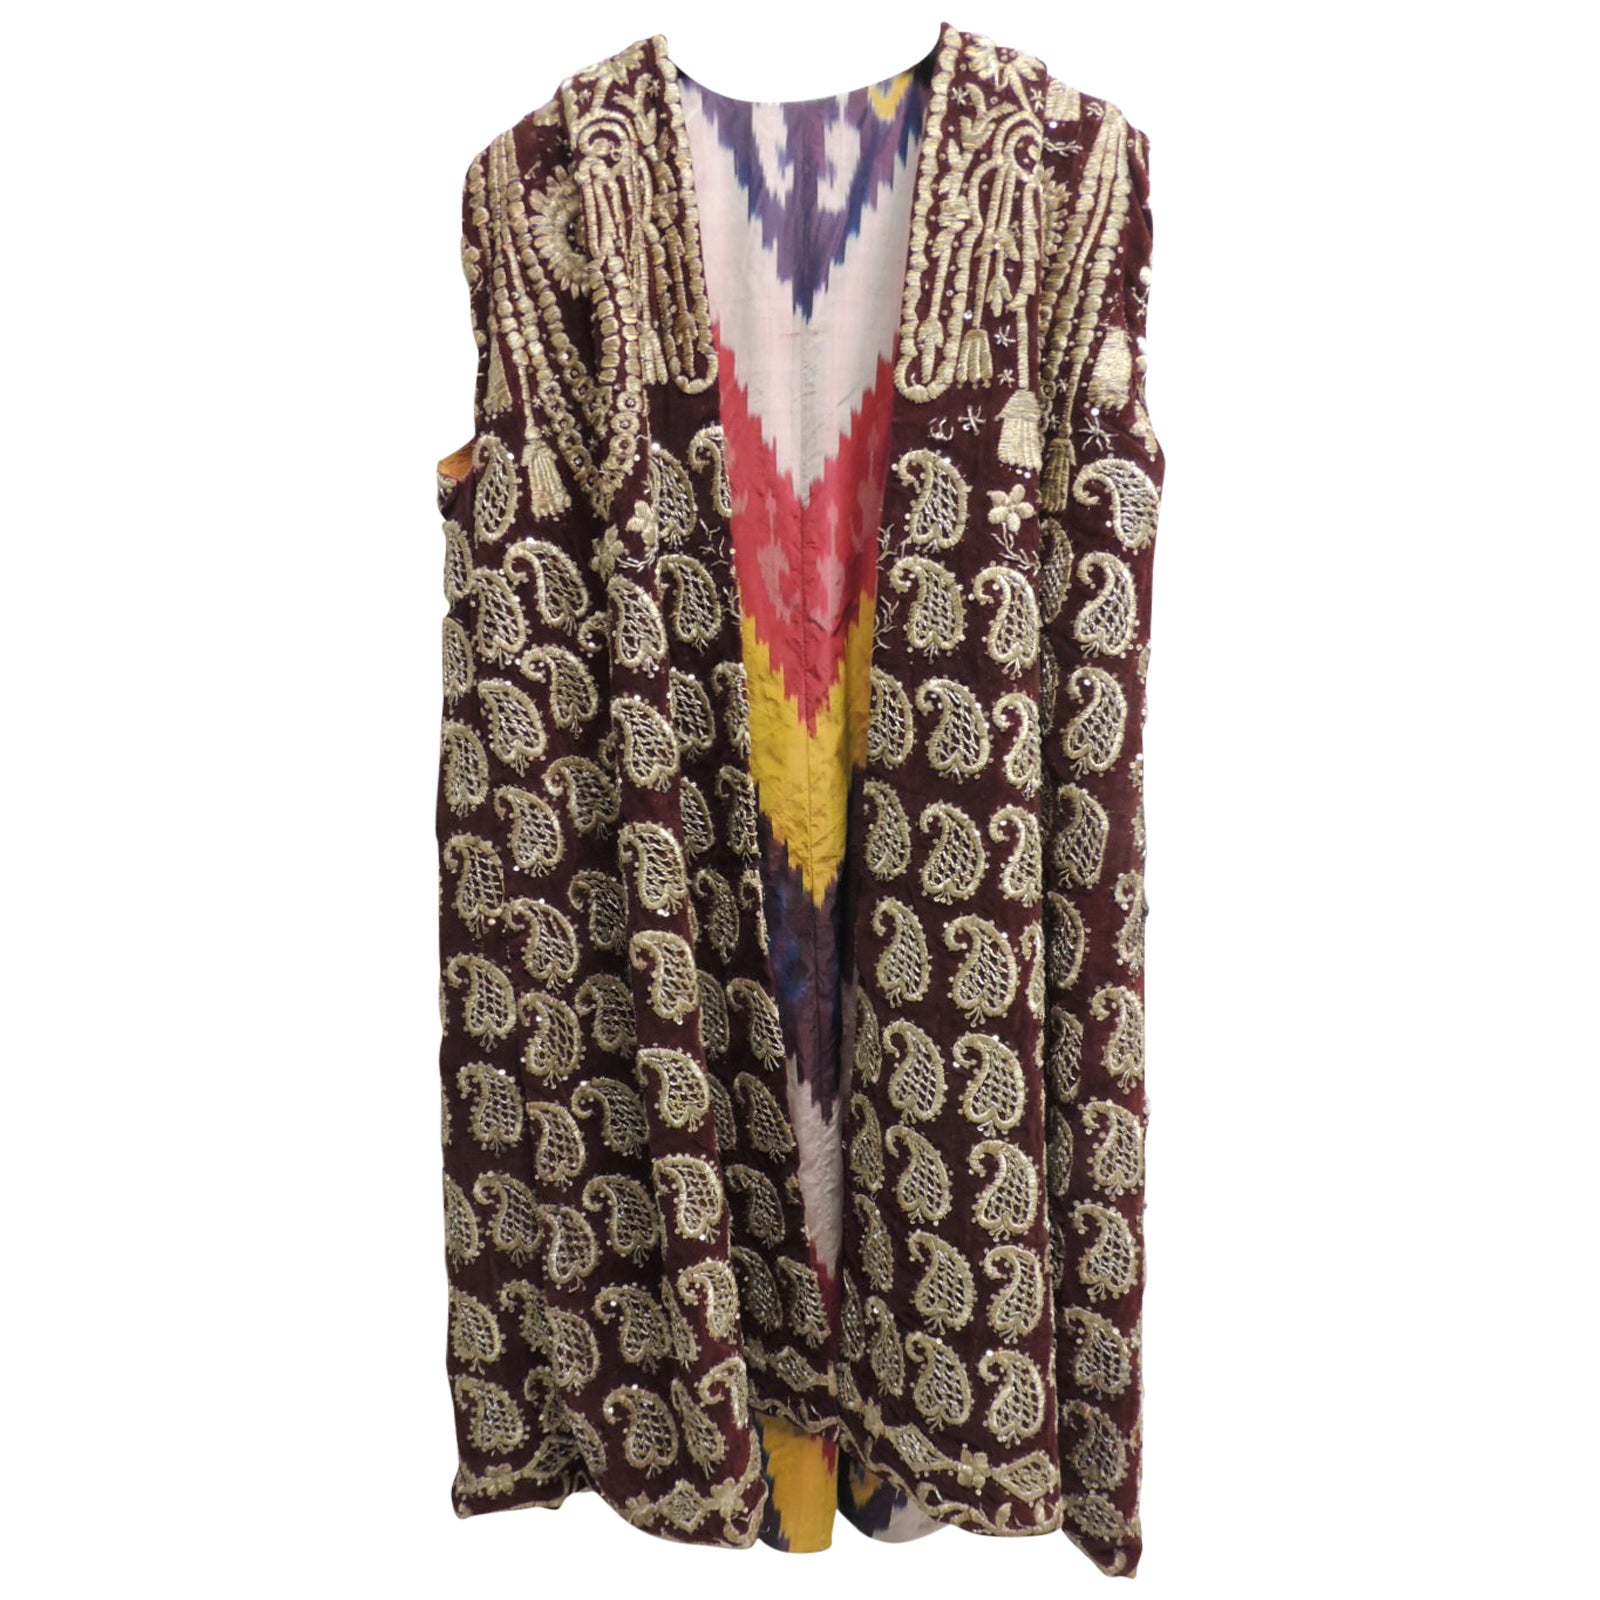 Red Velvet with Gold Metallic Hand Embroideries Ottoman Empire Vest/Coat